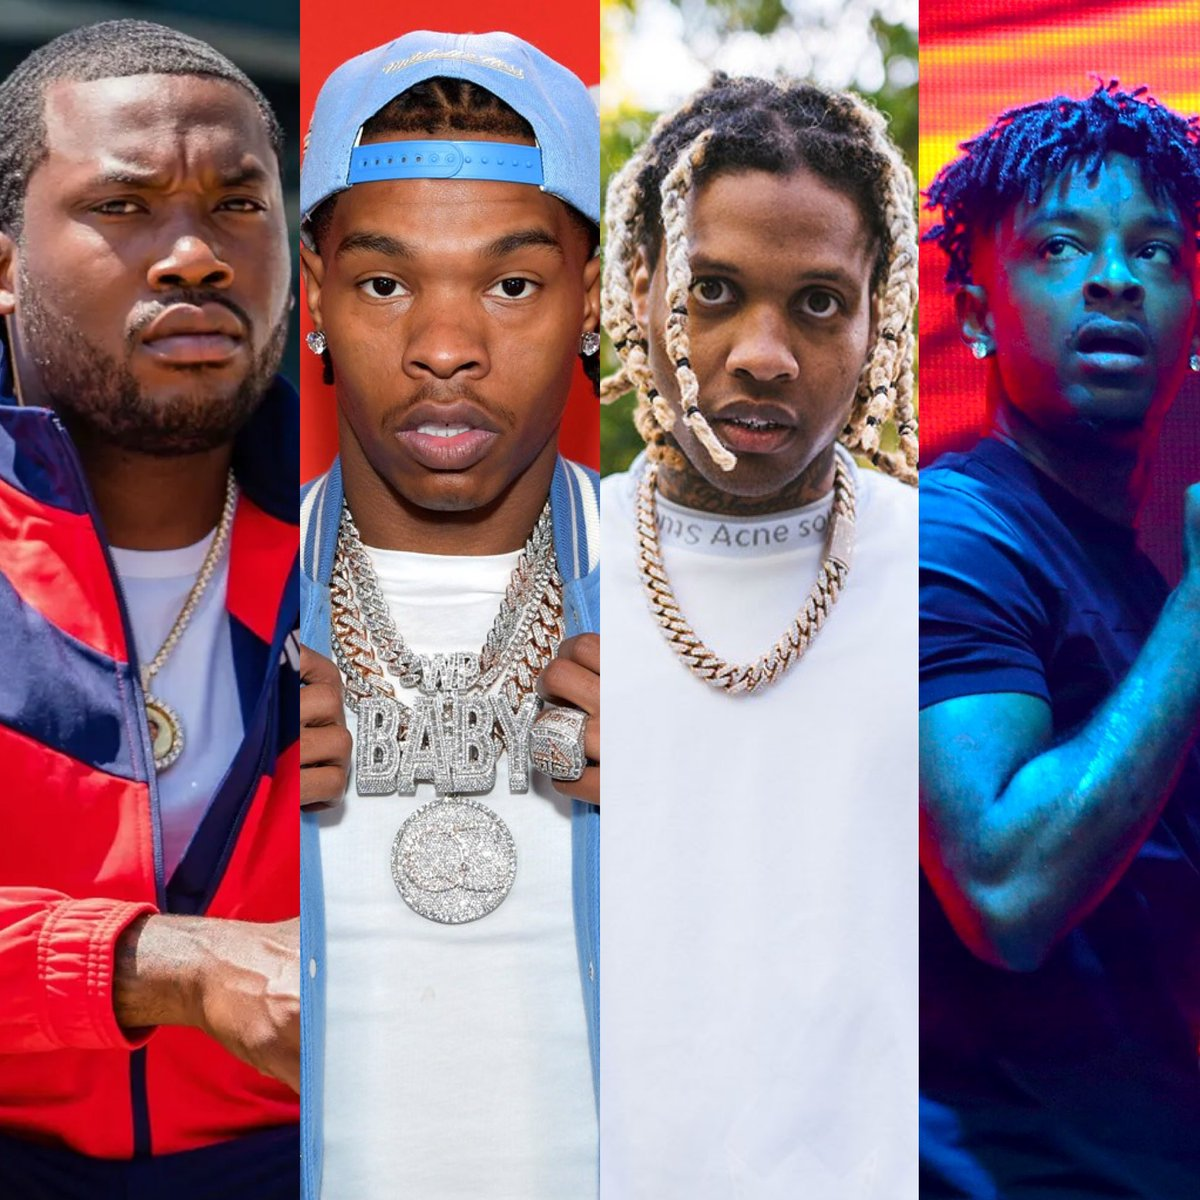 Replying to @DailyLoud: Meek Mill, Lil Baby, Lil Durk and 21 Savage want to create their own music streaming platform 🔥